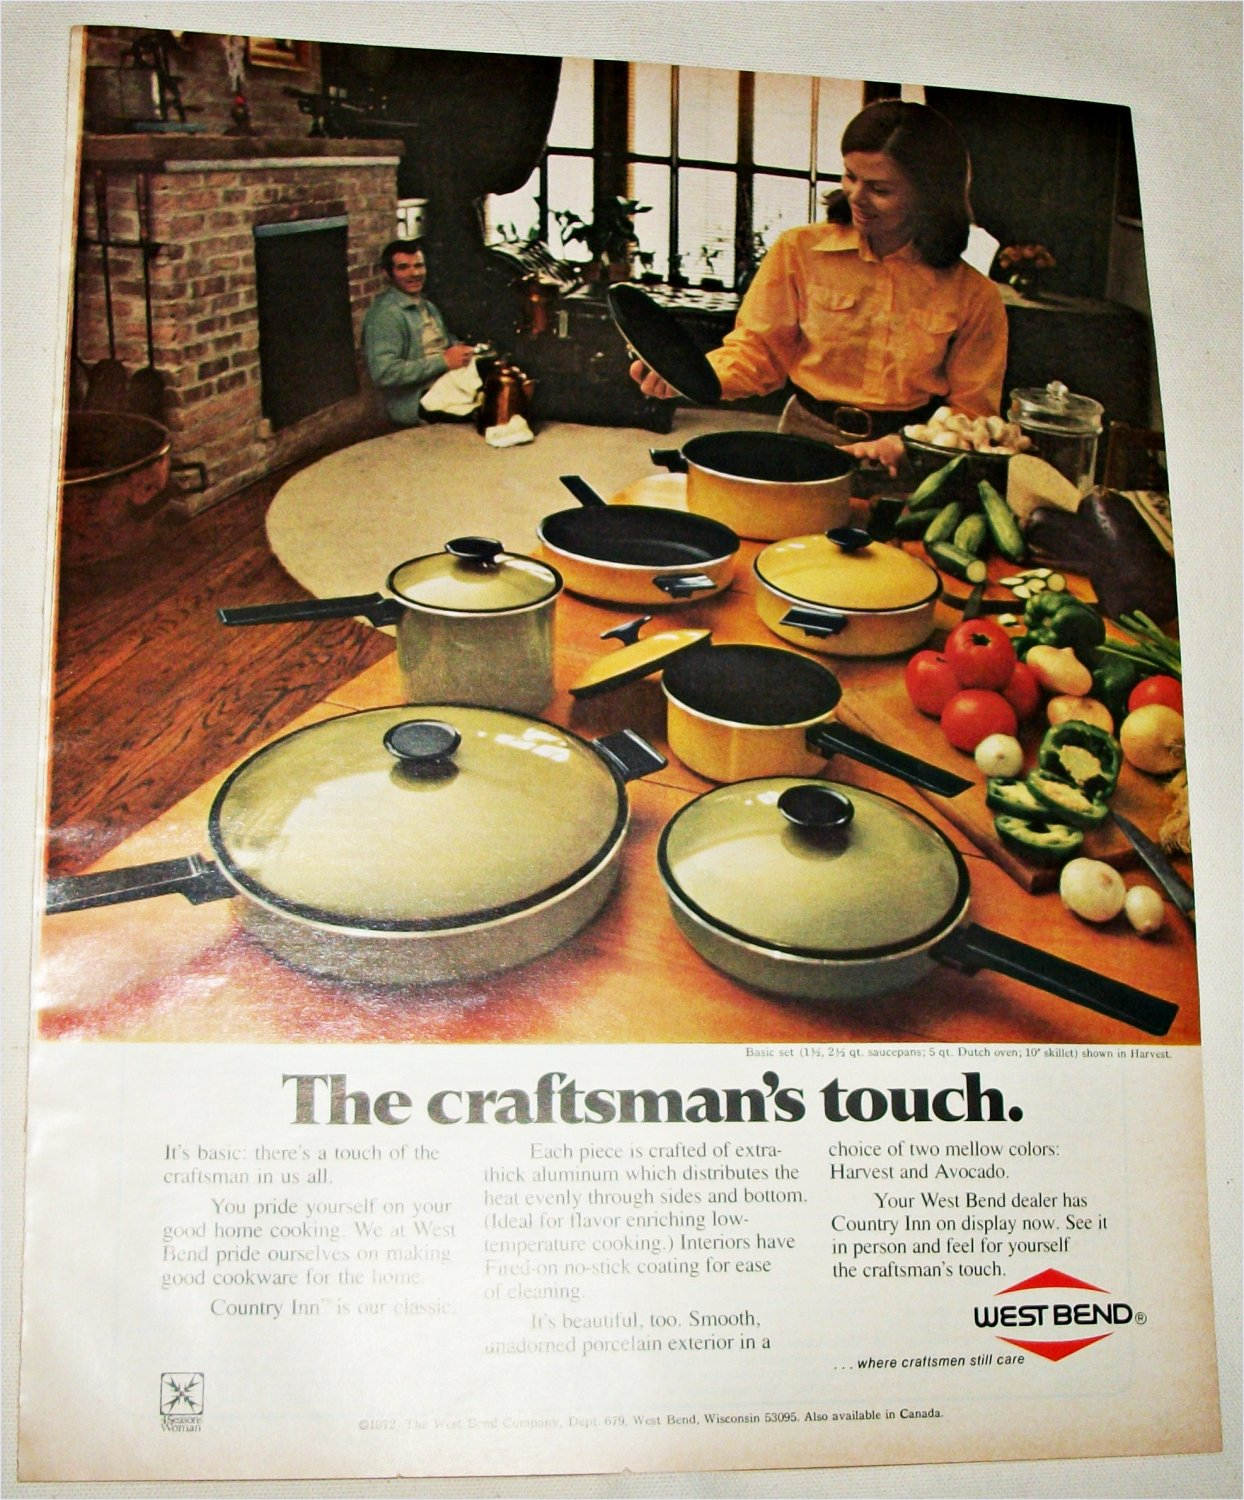 1972 West Bend Country Inn Cookware ad